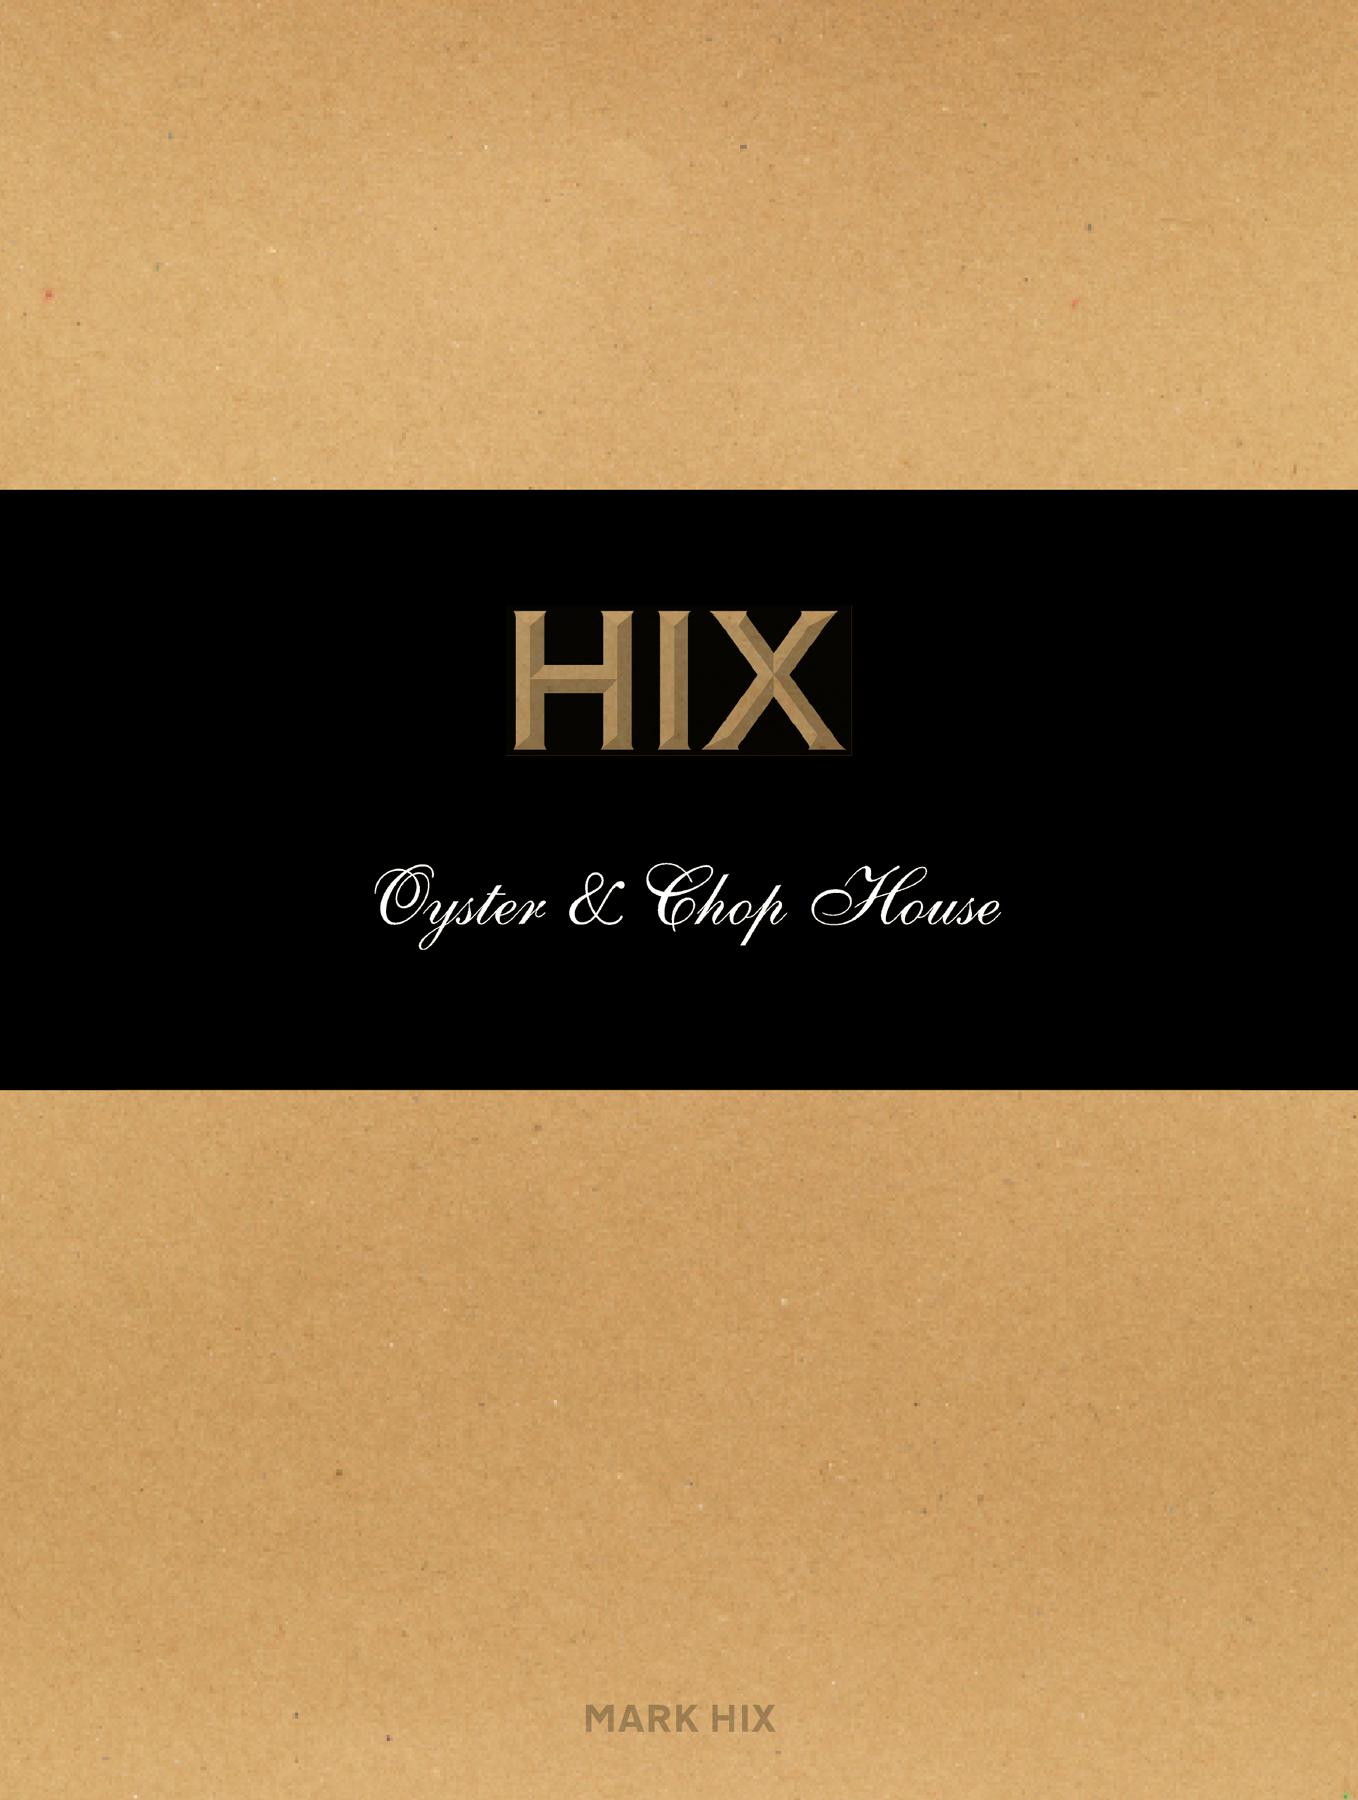 Hix Oyster & Chop House